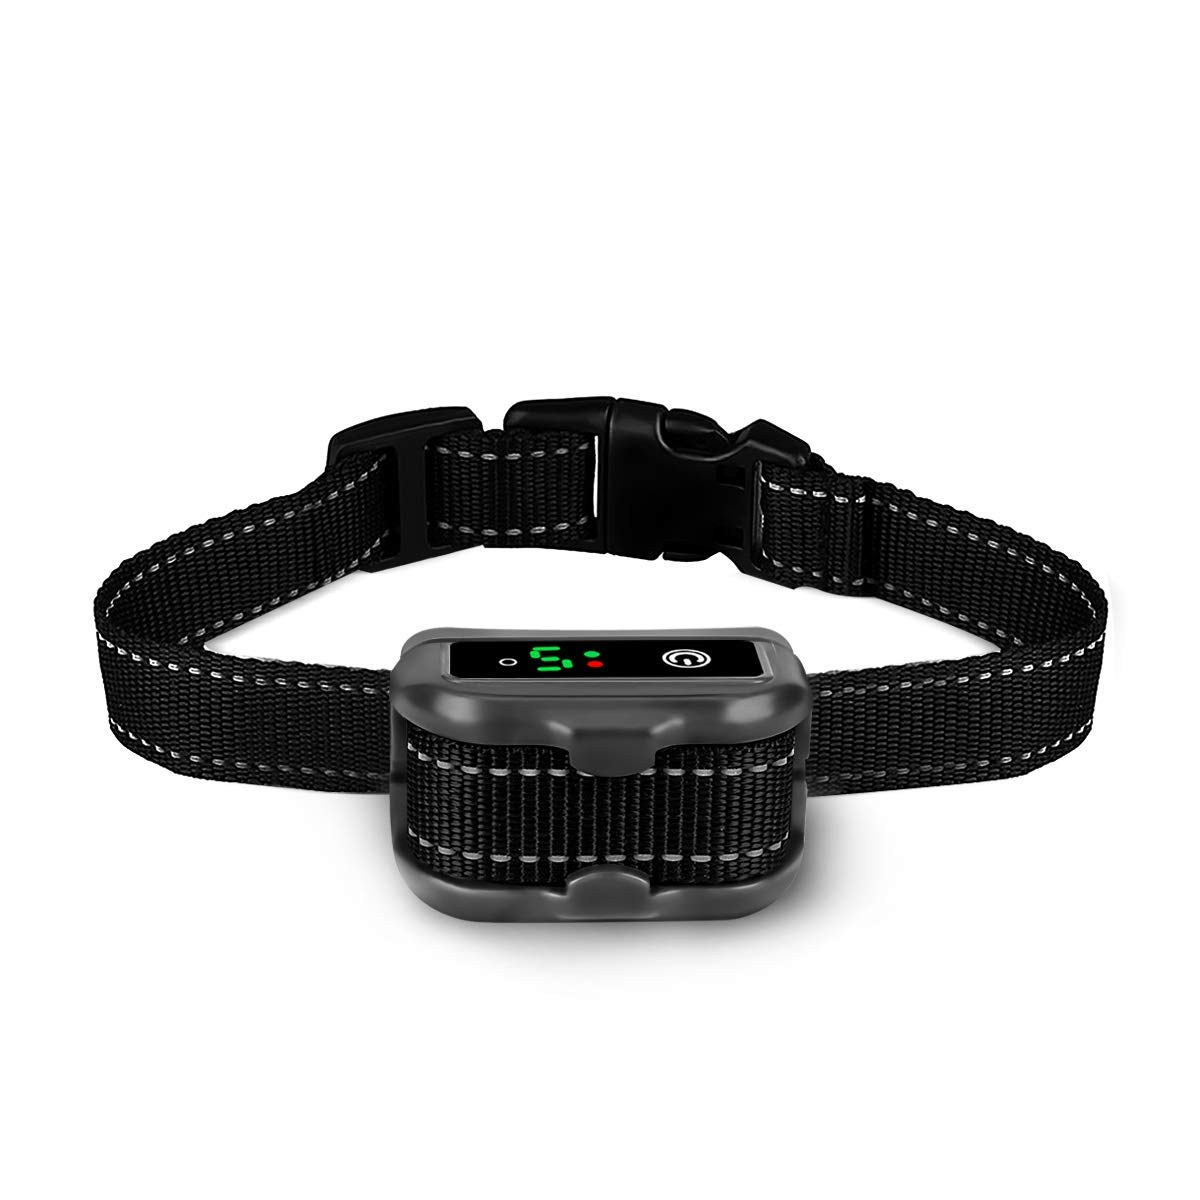 ieGeek Dog Bark Collar Anti Barking Collars Rechargeable No Bark Control Training Device, IP67 Waterproof E-collar with Beep, Vibration Static Shock Mode No Shock Mode for Small Medium and Large Dogs